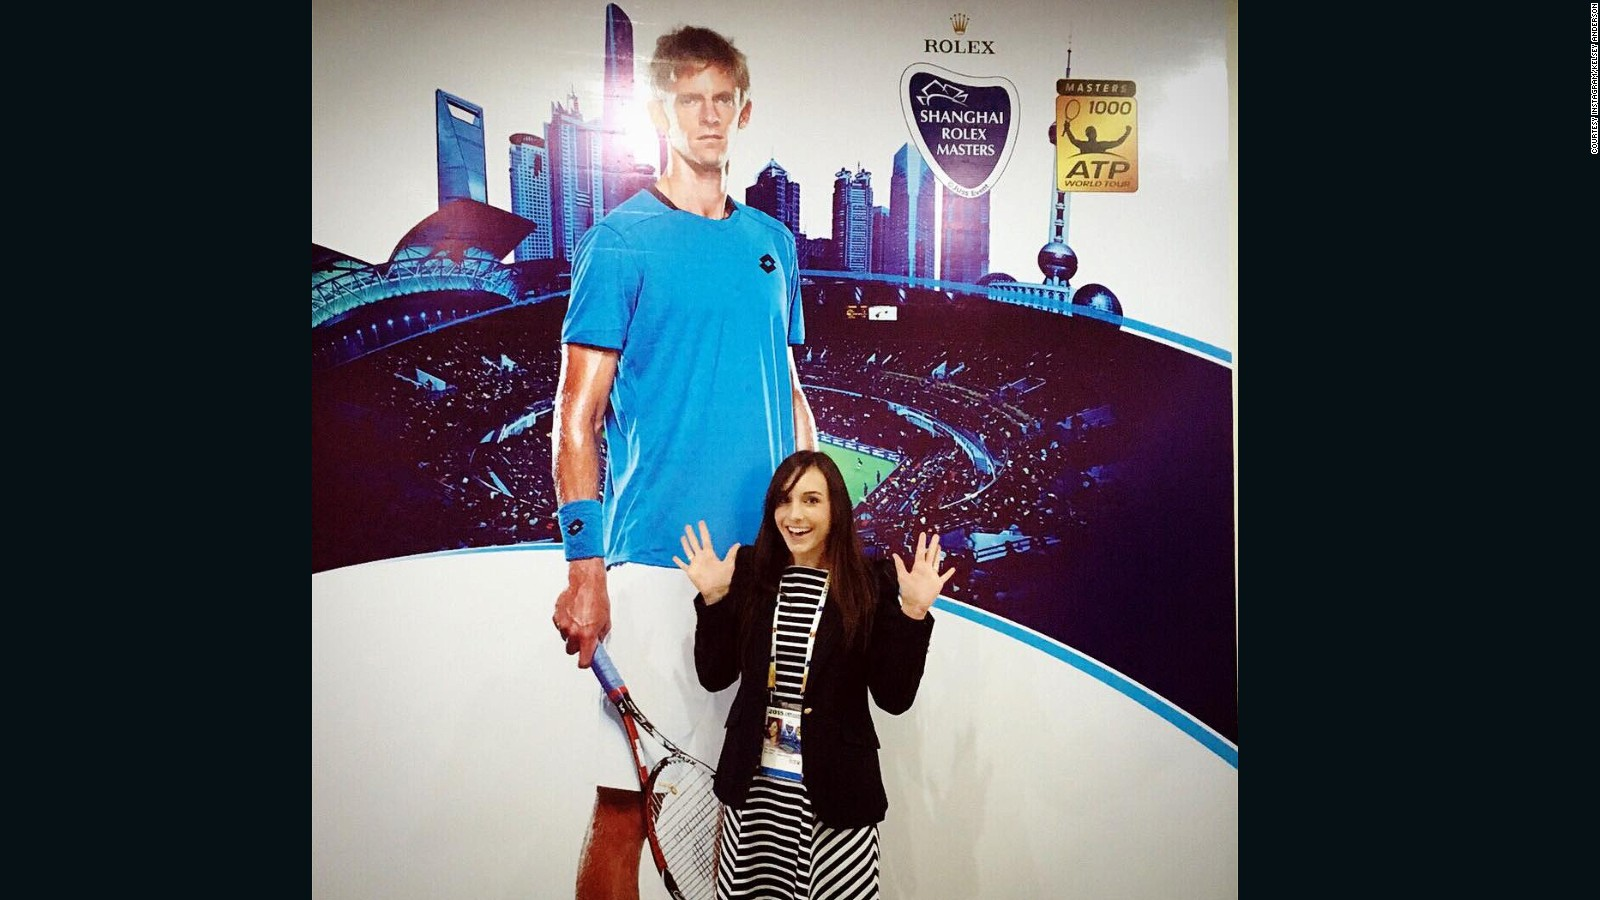 Love match: Day in the life of a tennis wife on tour